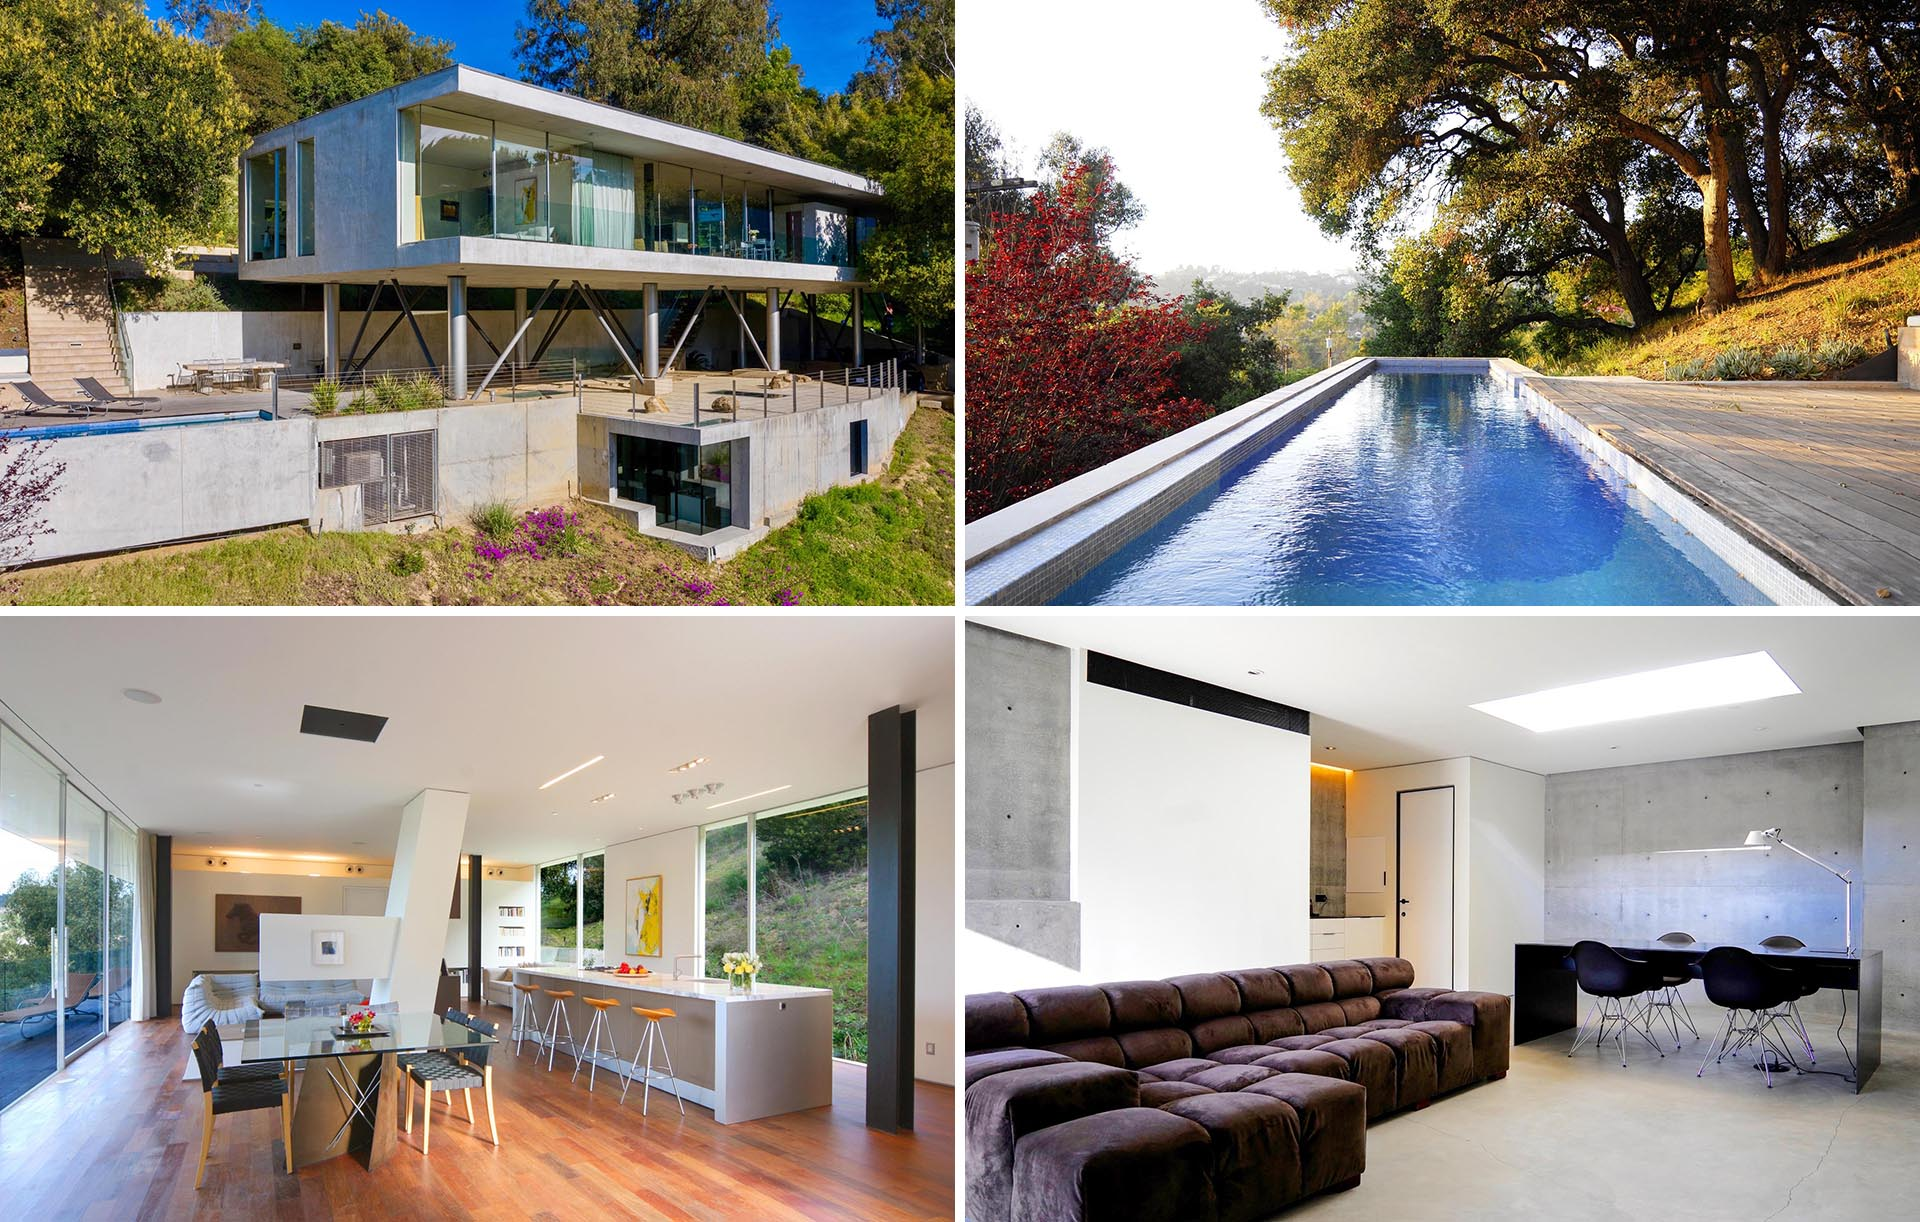 A modern concrete house with an open plan interior, a swimming pool, and an underground home office.